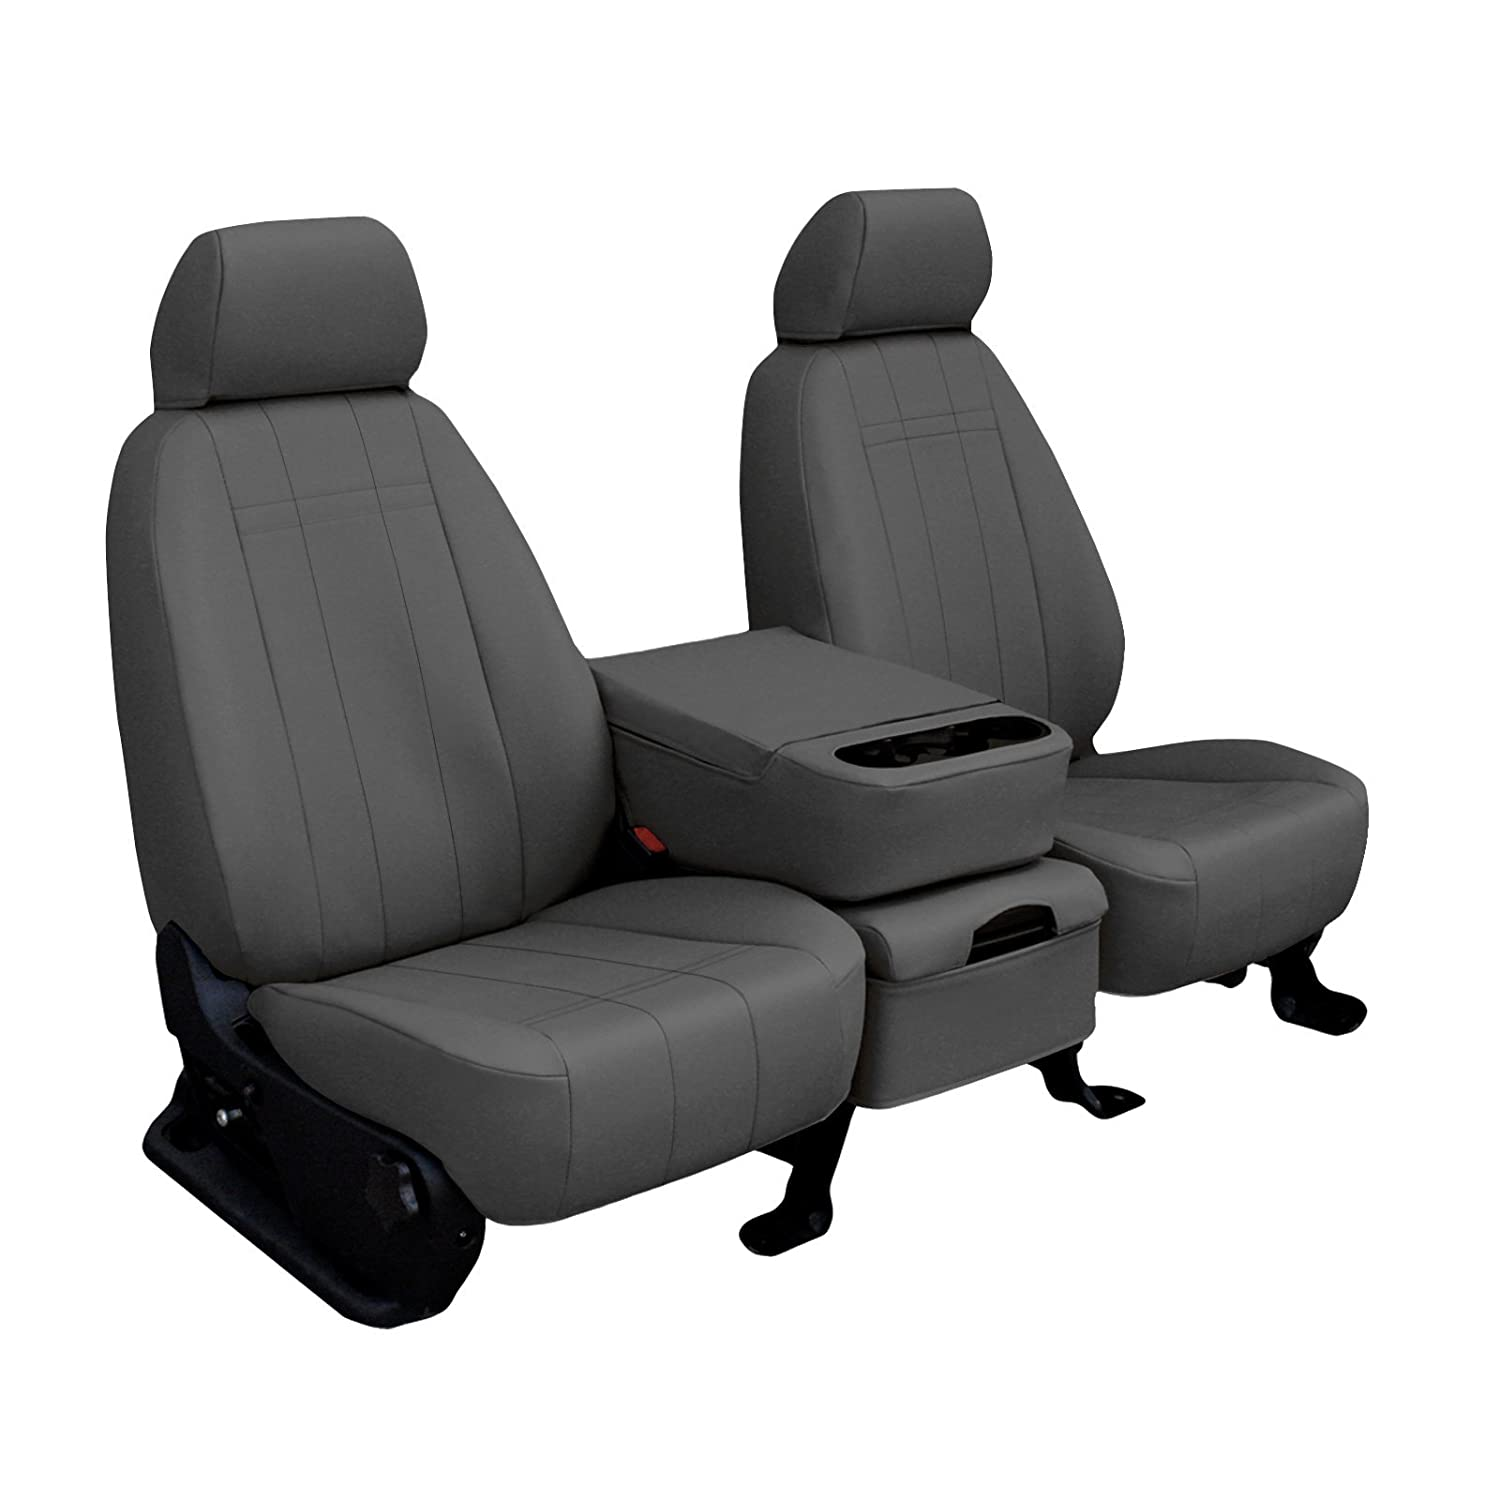 2001 F-150 Lariat X-Cab Driver Side Bottom Replacement Leather Seat Cover Gray